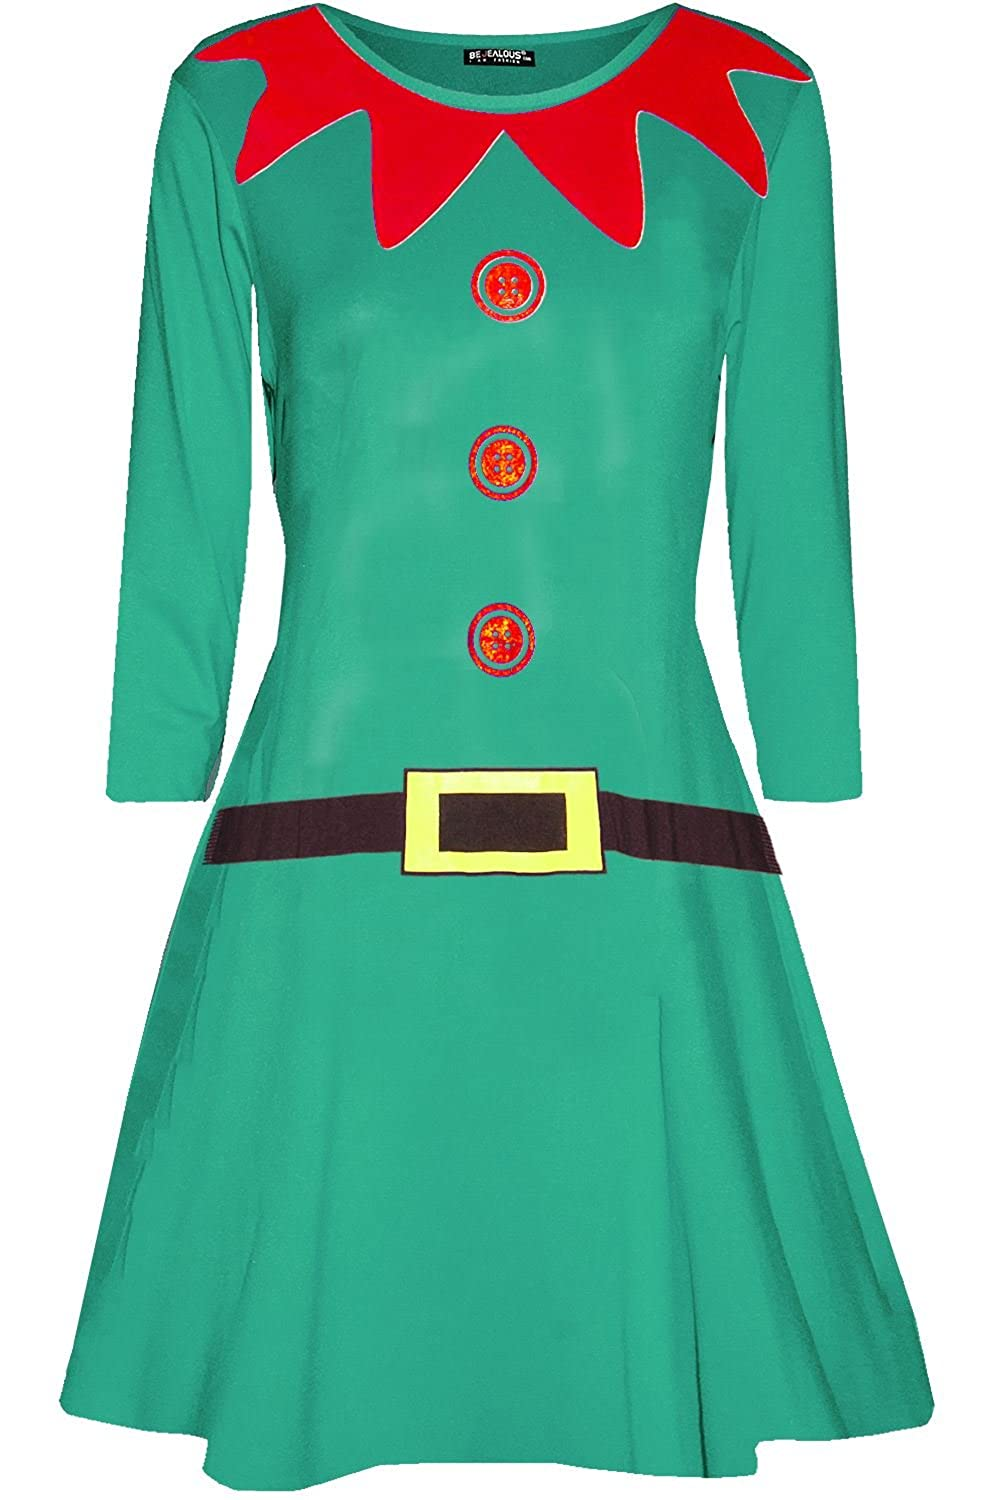 7defe23c19aa6 Amazon.com: Be Jealous Women Xmas Elf Santa's Little Helper Costume ...